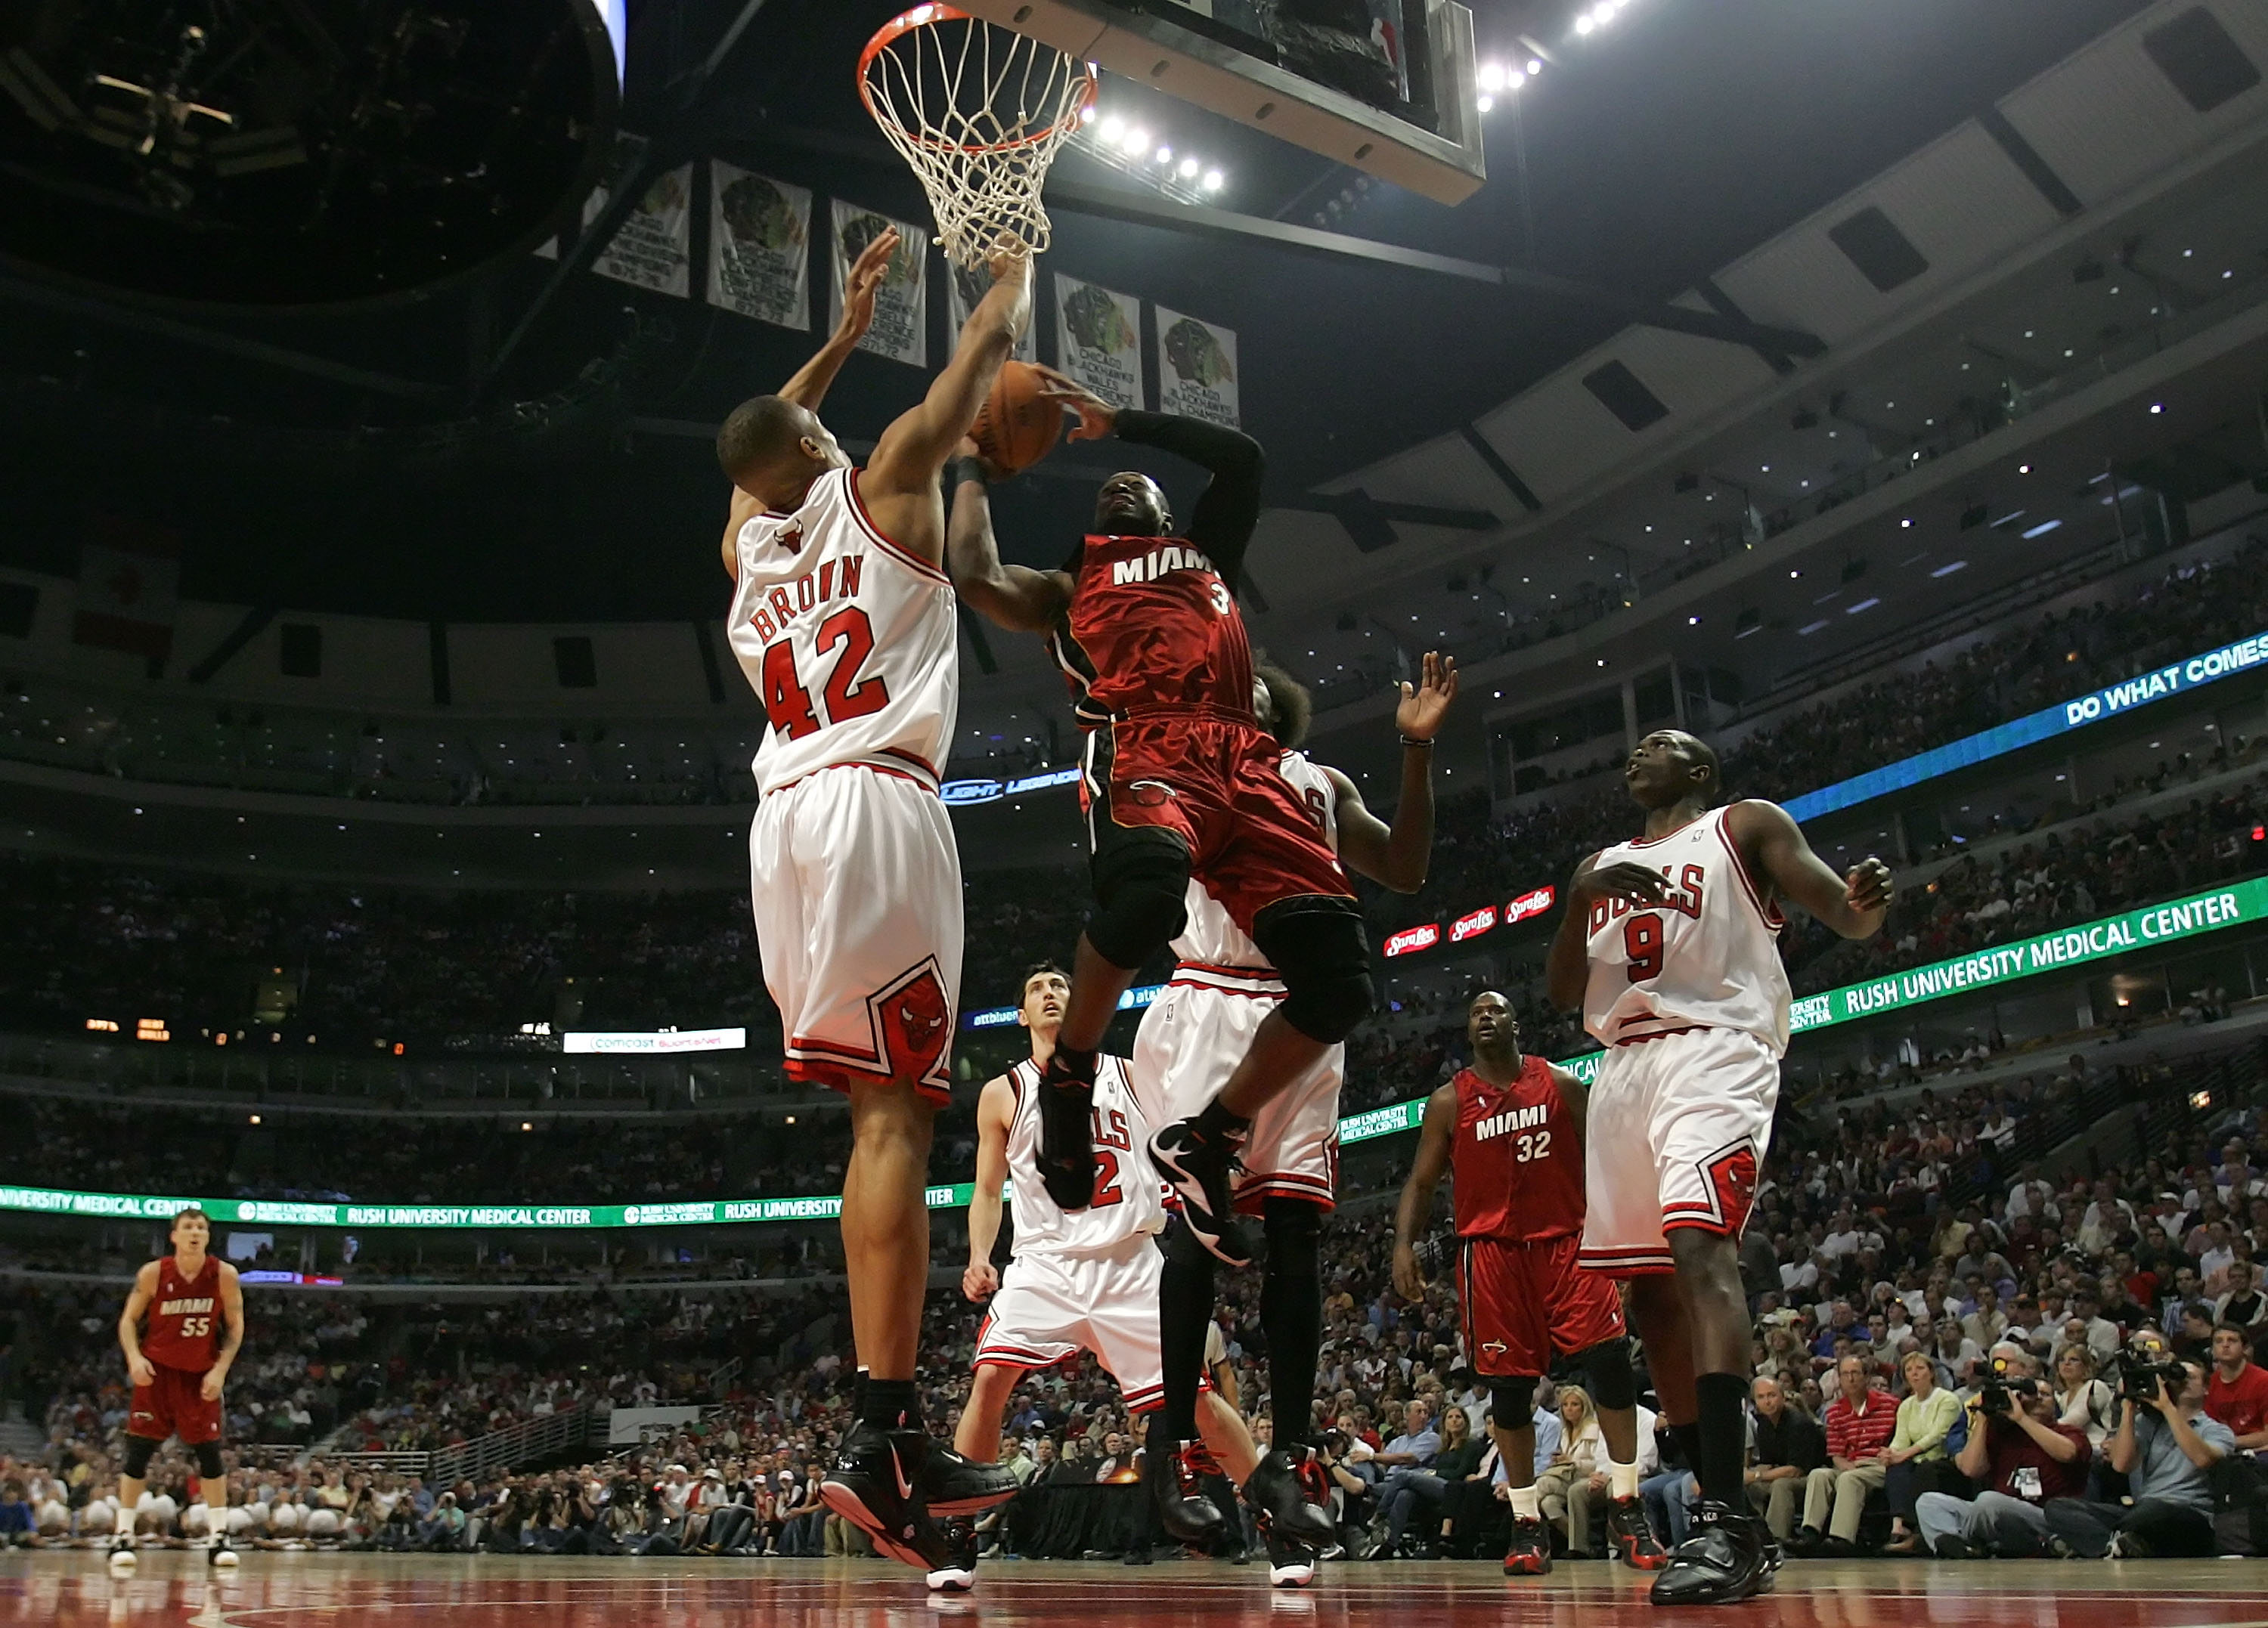 Bulls vs. Heat  From Rose to LeBron 884094c6553a